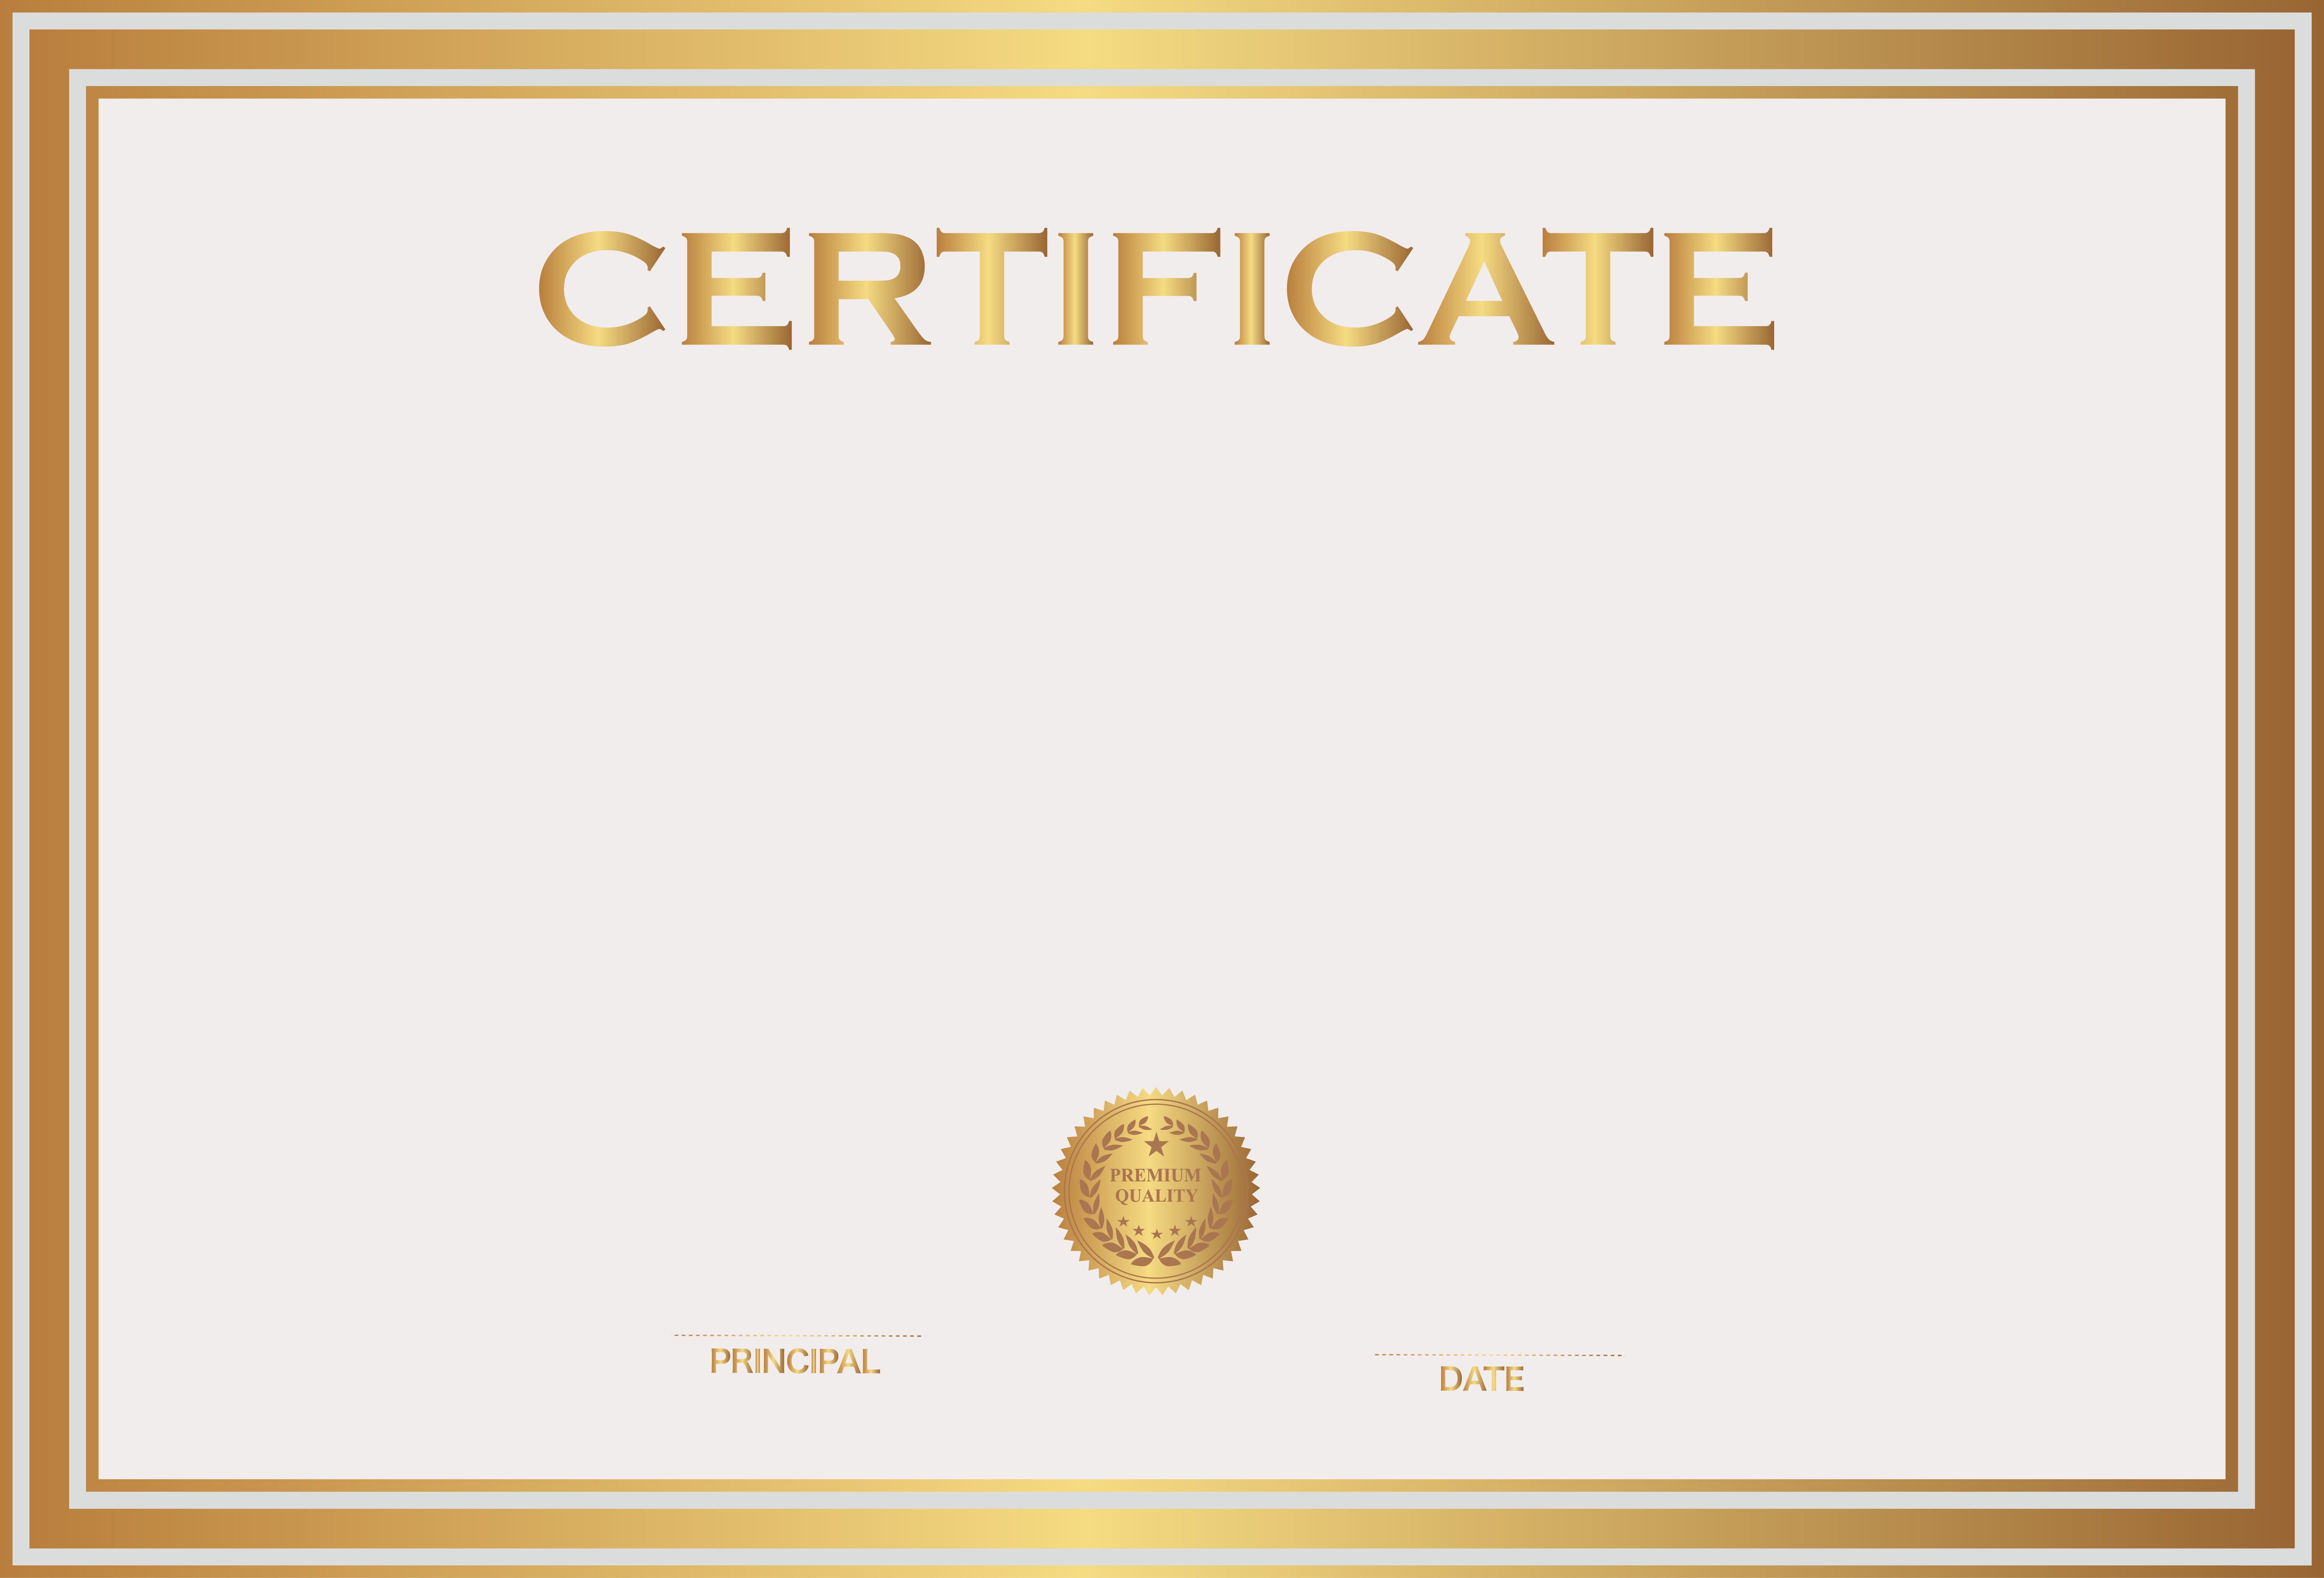 White and gold certificate template png image gallery white and gold certificate template png image gallery yopriceville high quality images yelopaper Gallery